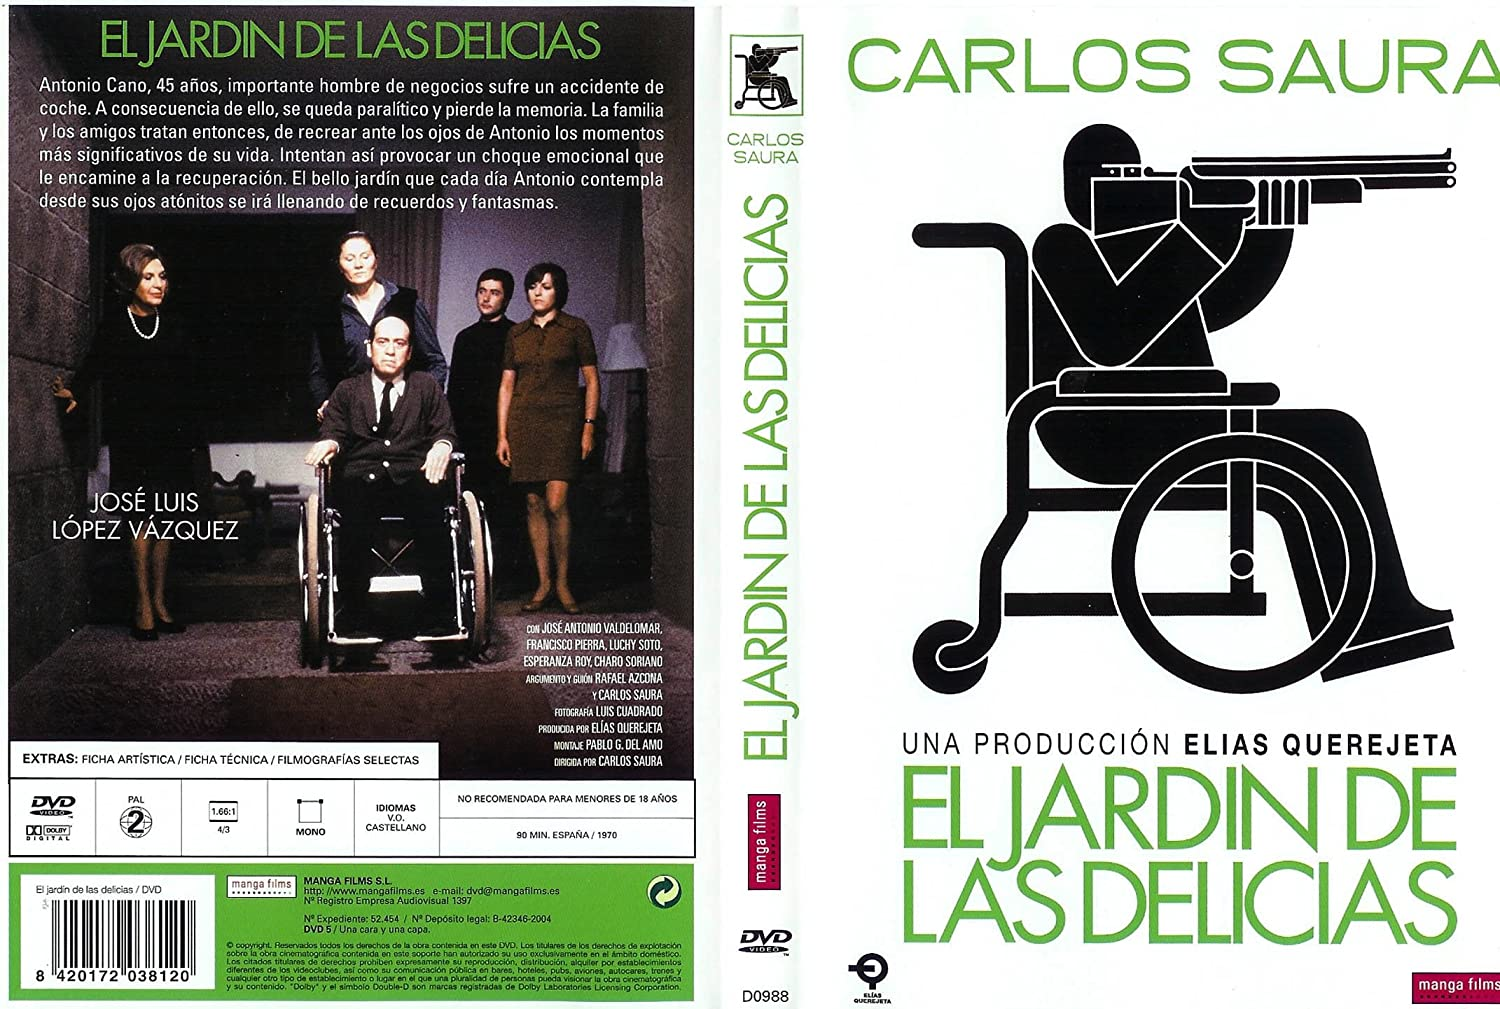 El jardin de las delicias (DVD): Amazon.es: Cine y Series TV